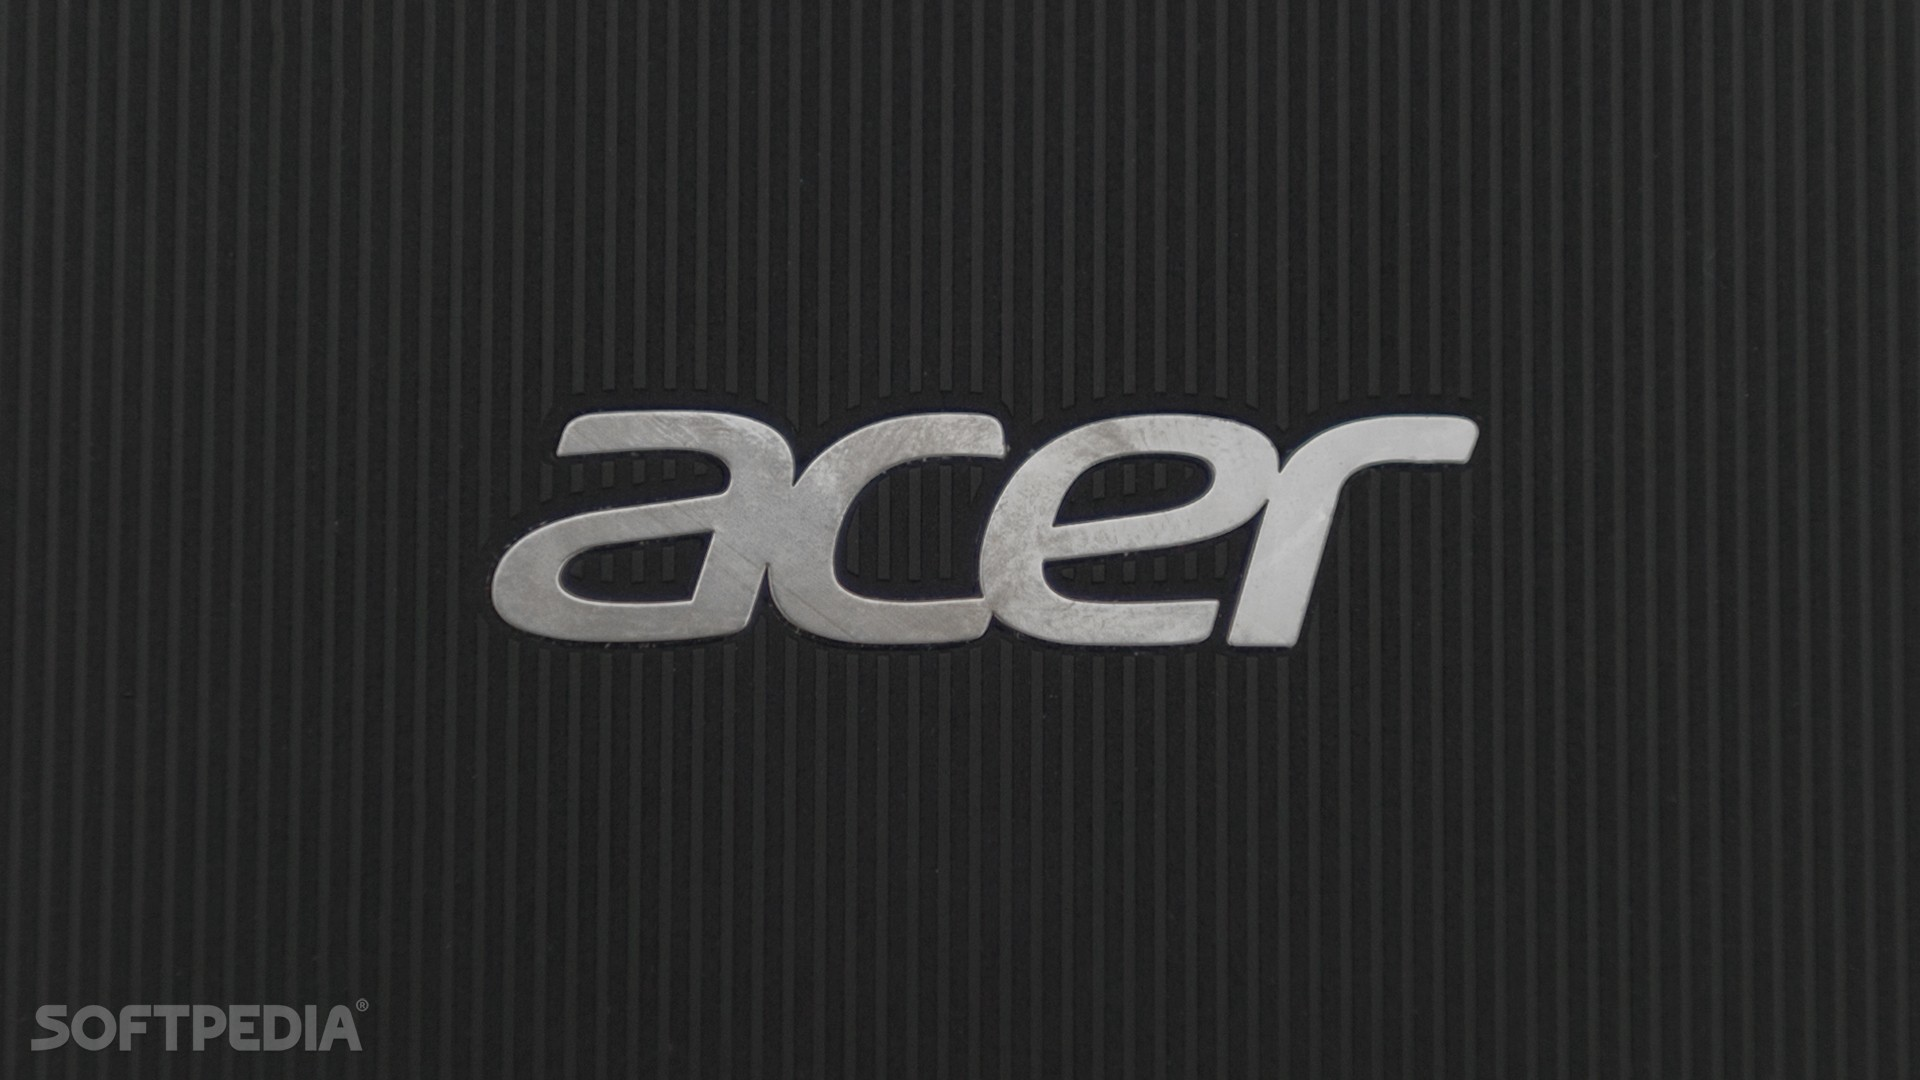 Amazing Acer Pictures & Backgrounds